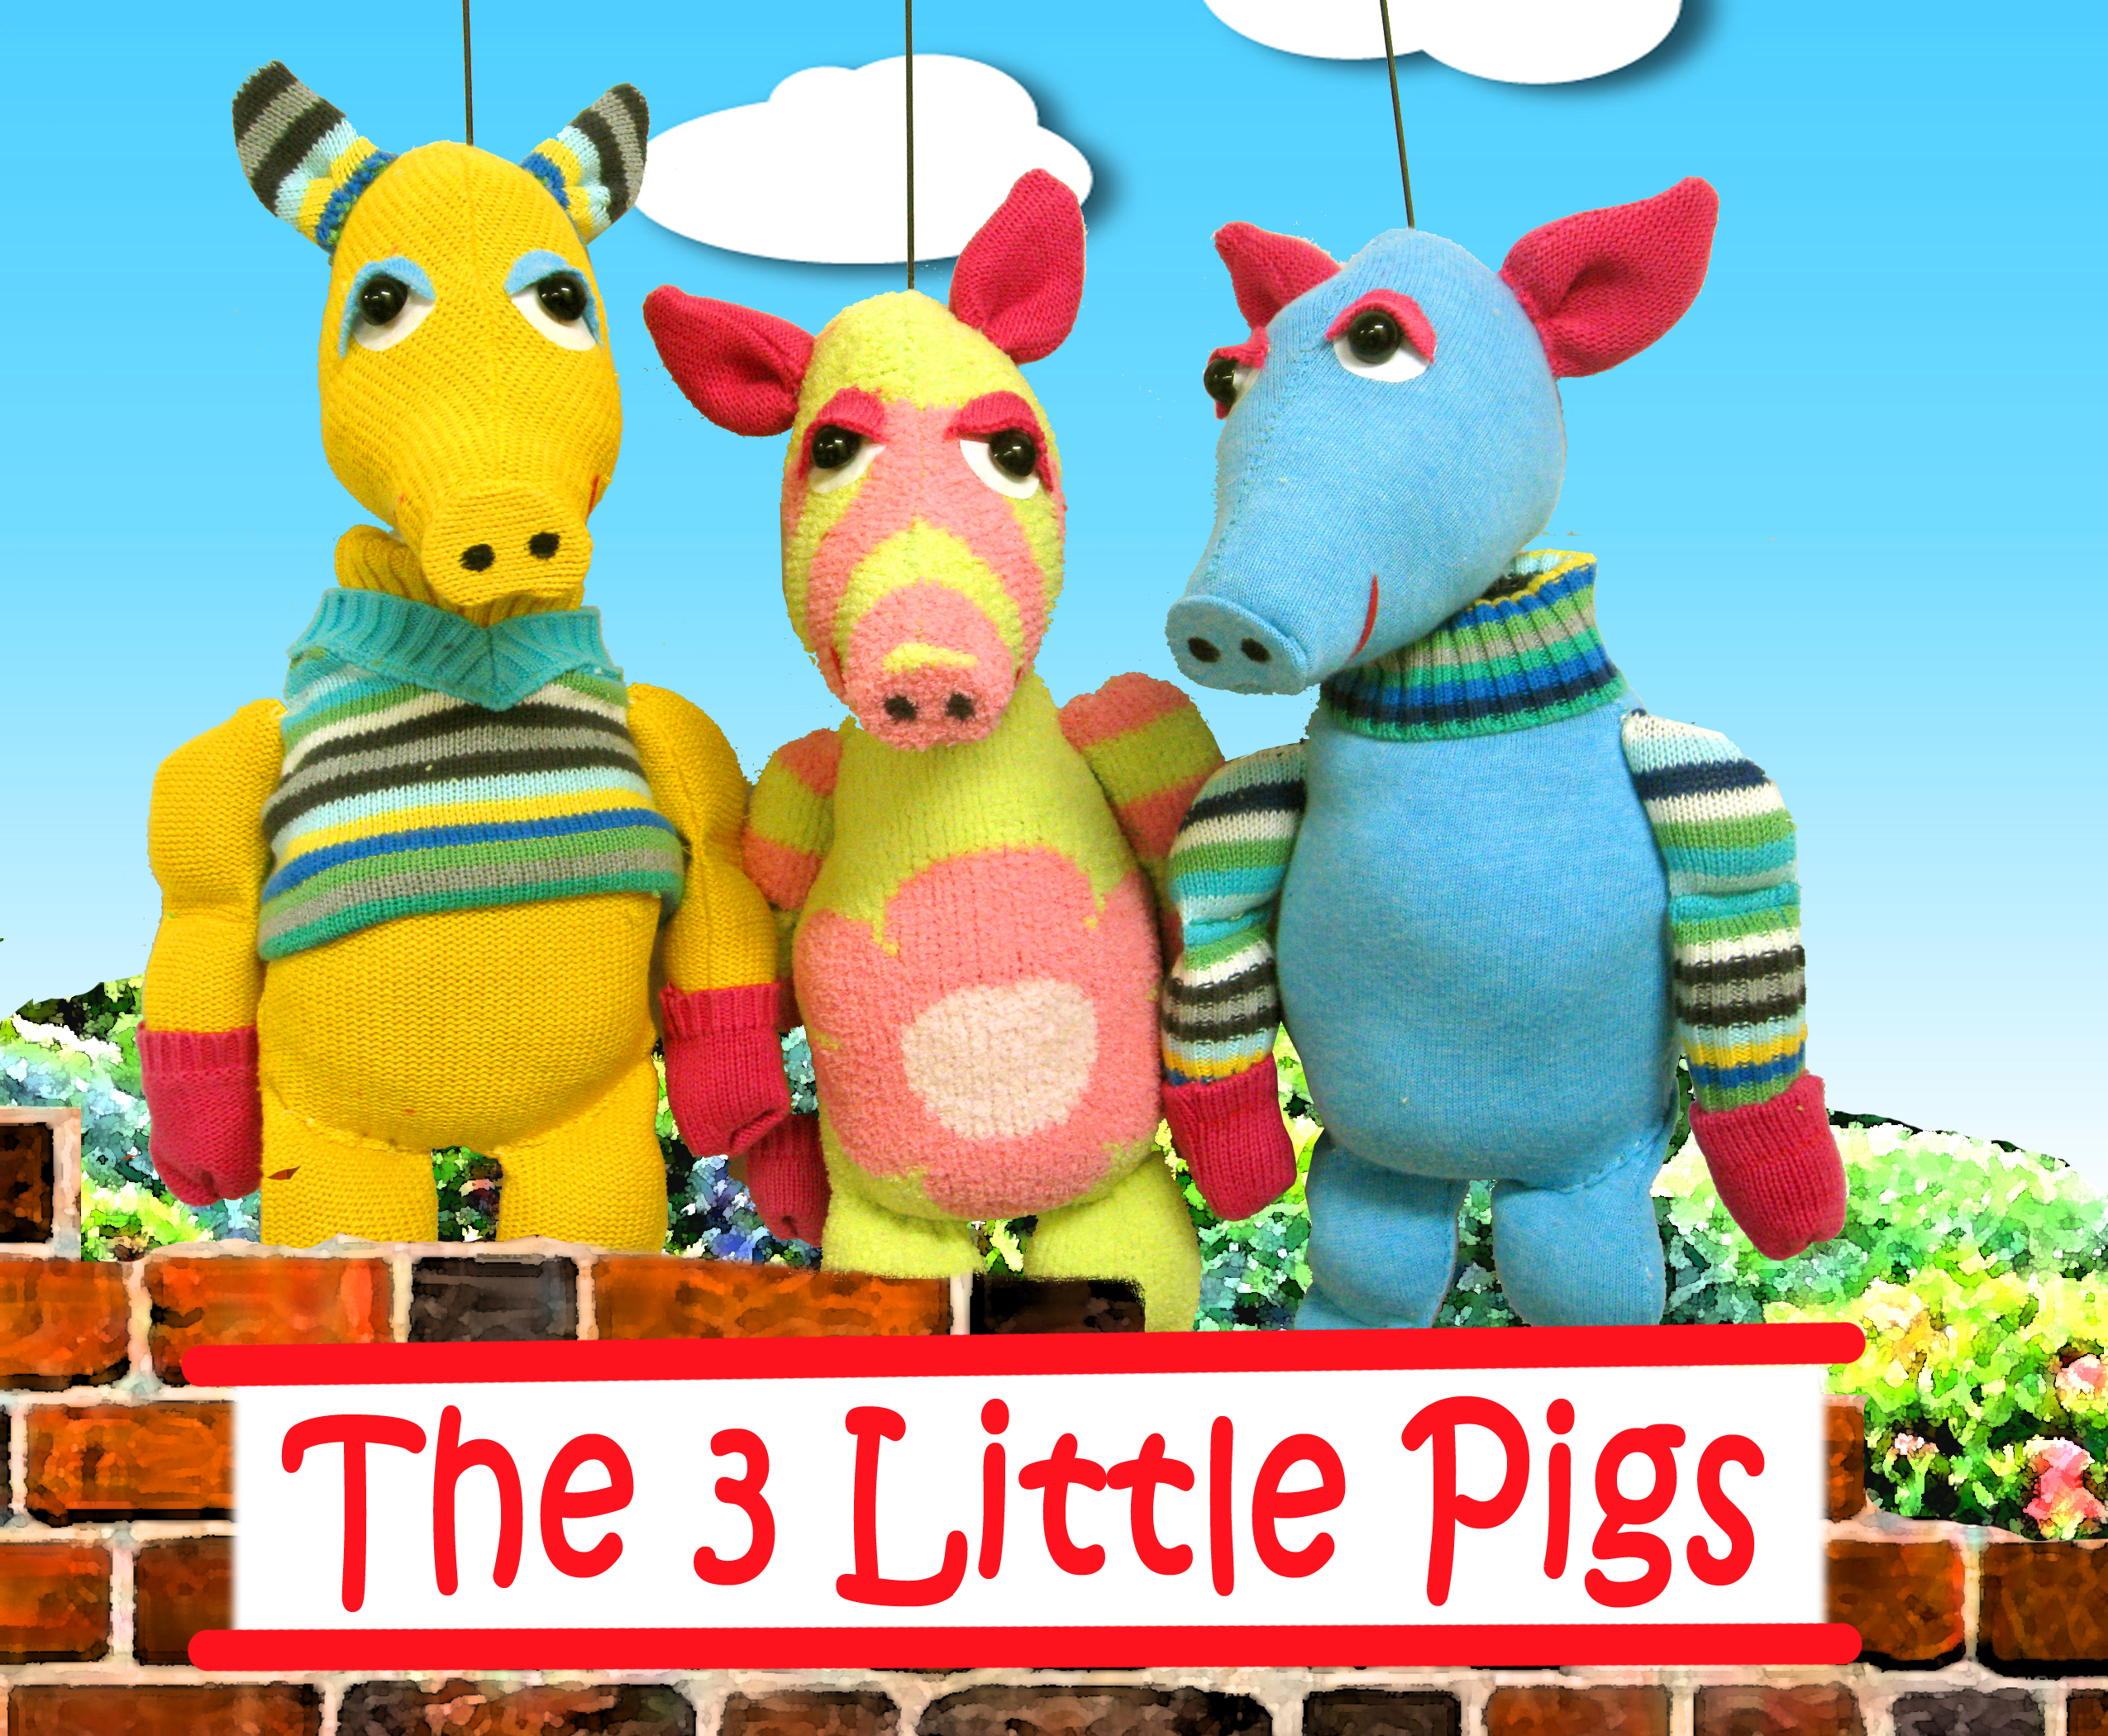 Magical Moonshine Theatre presents The Three Little Pigs